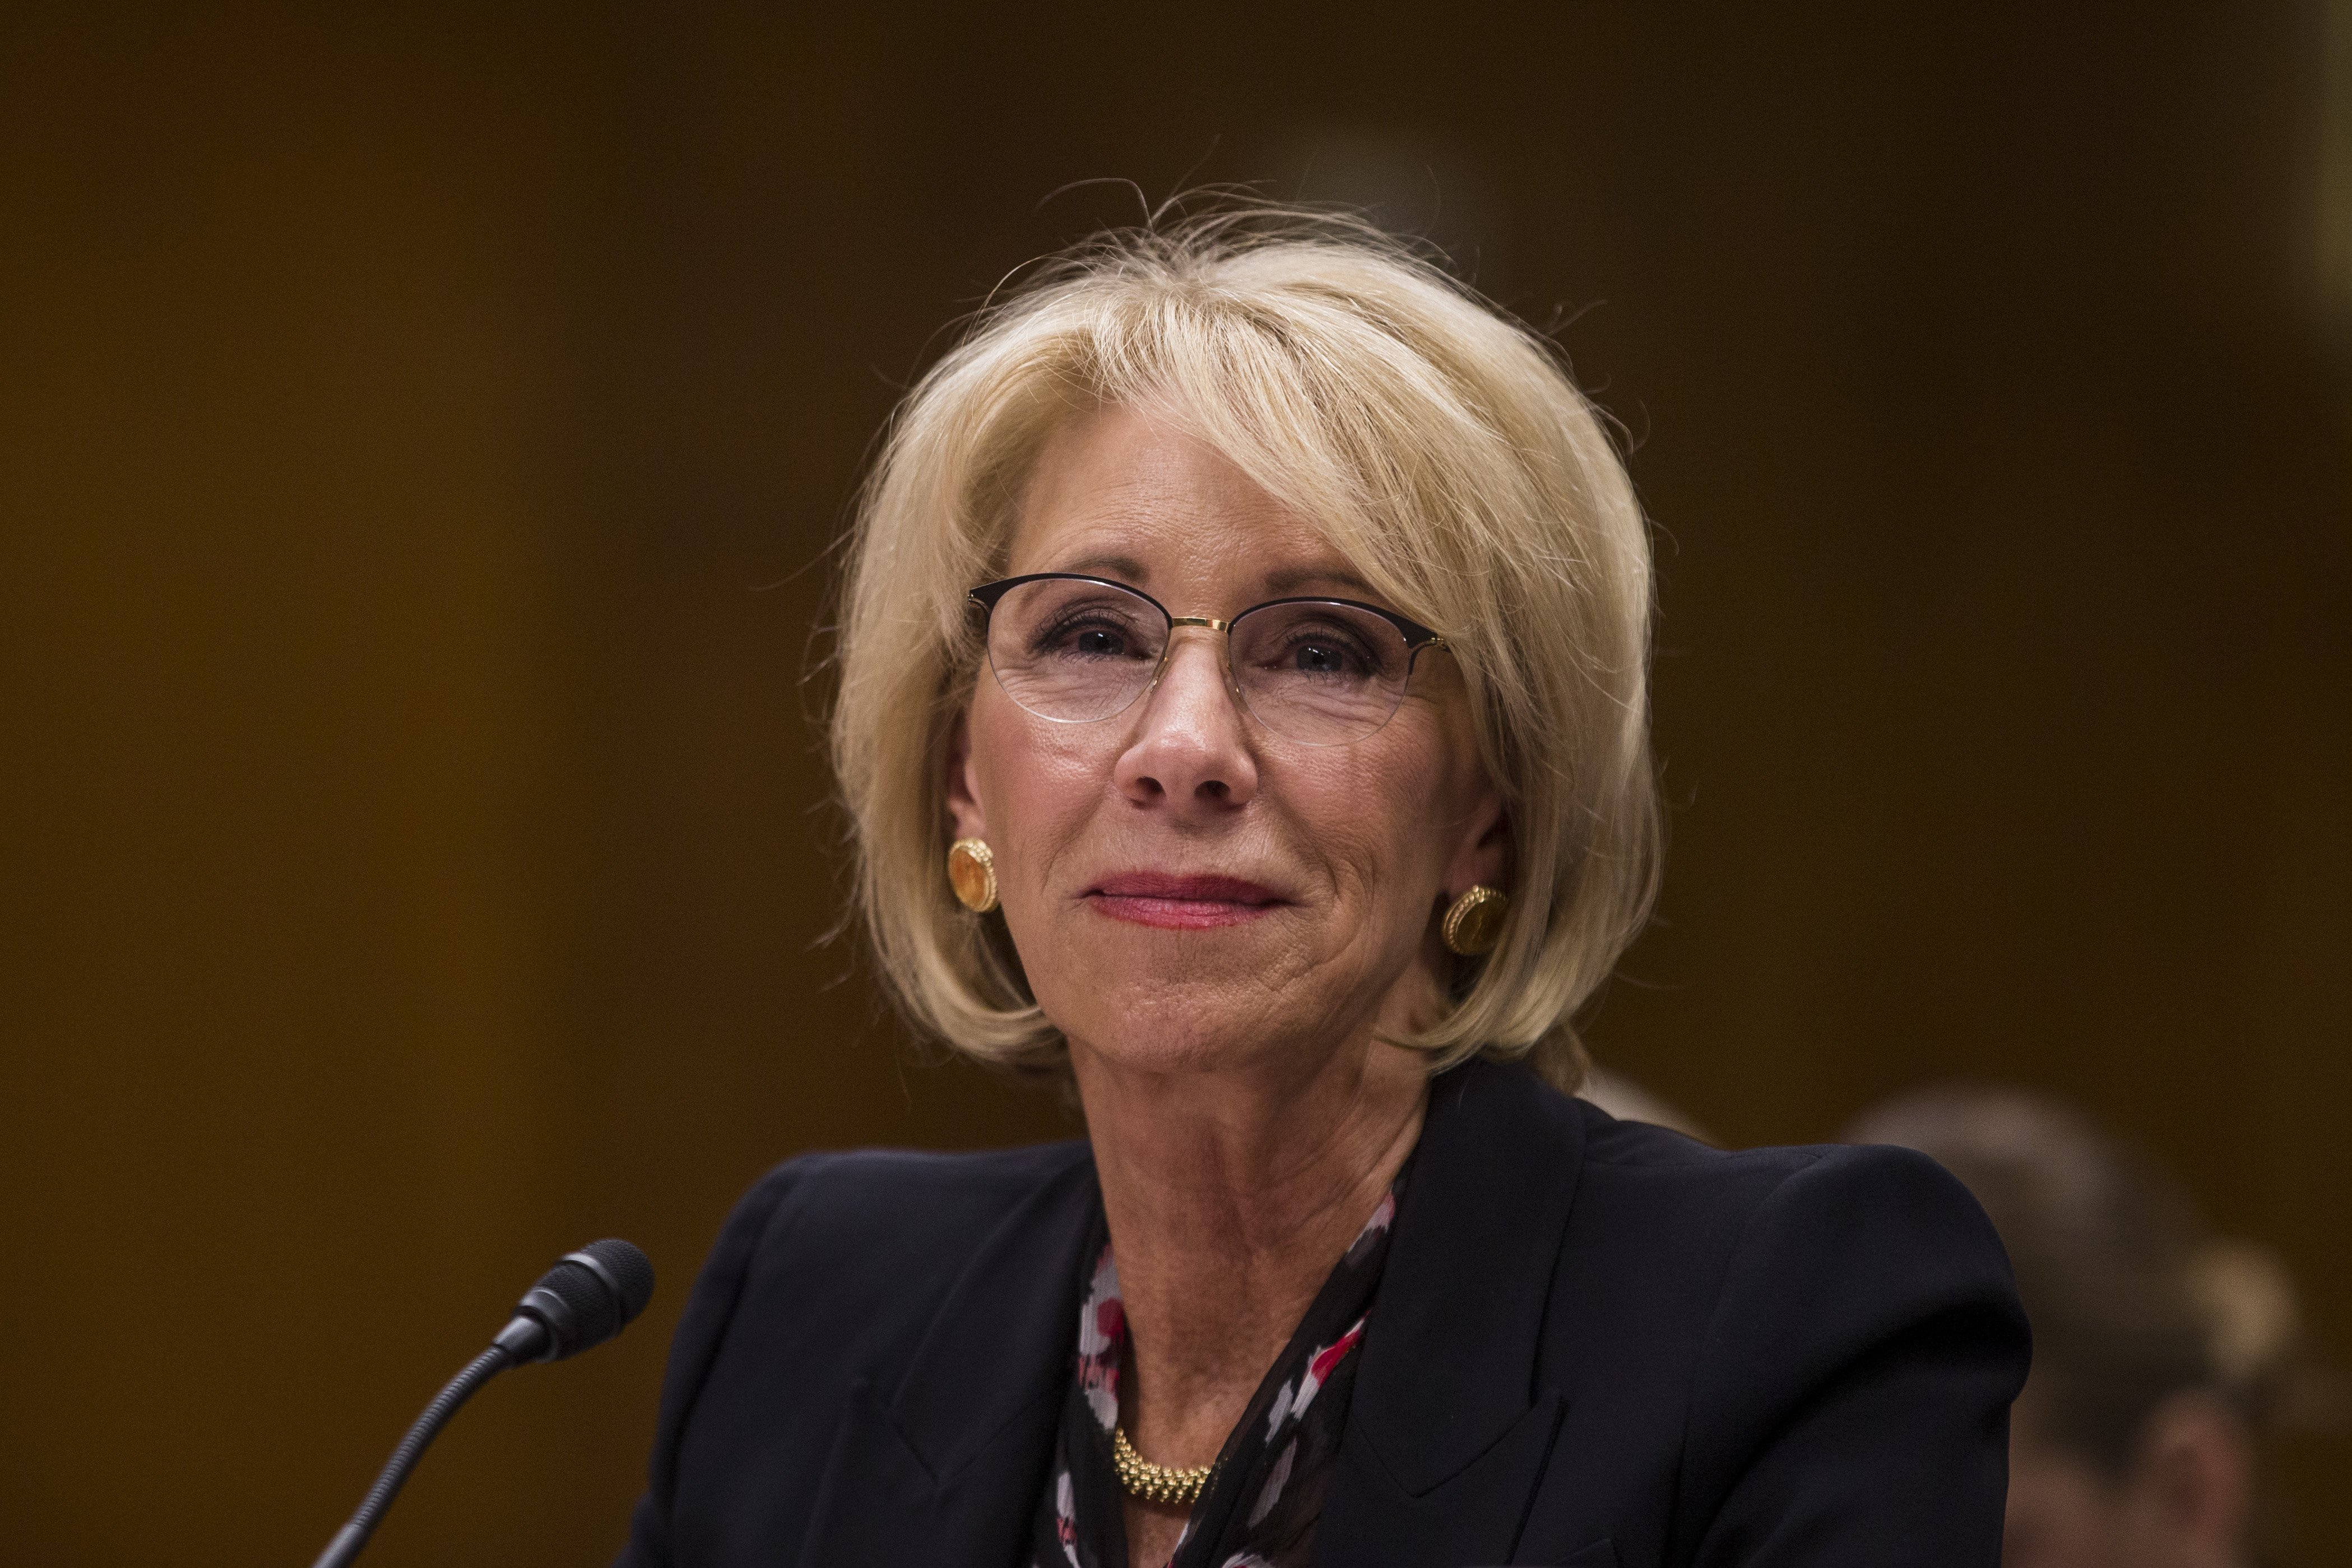 DeVos to visit school that refuses to accommodate trans students